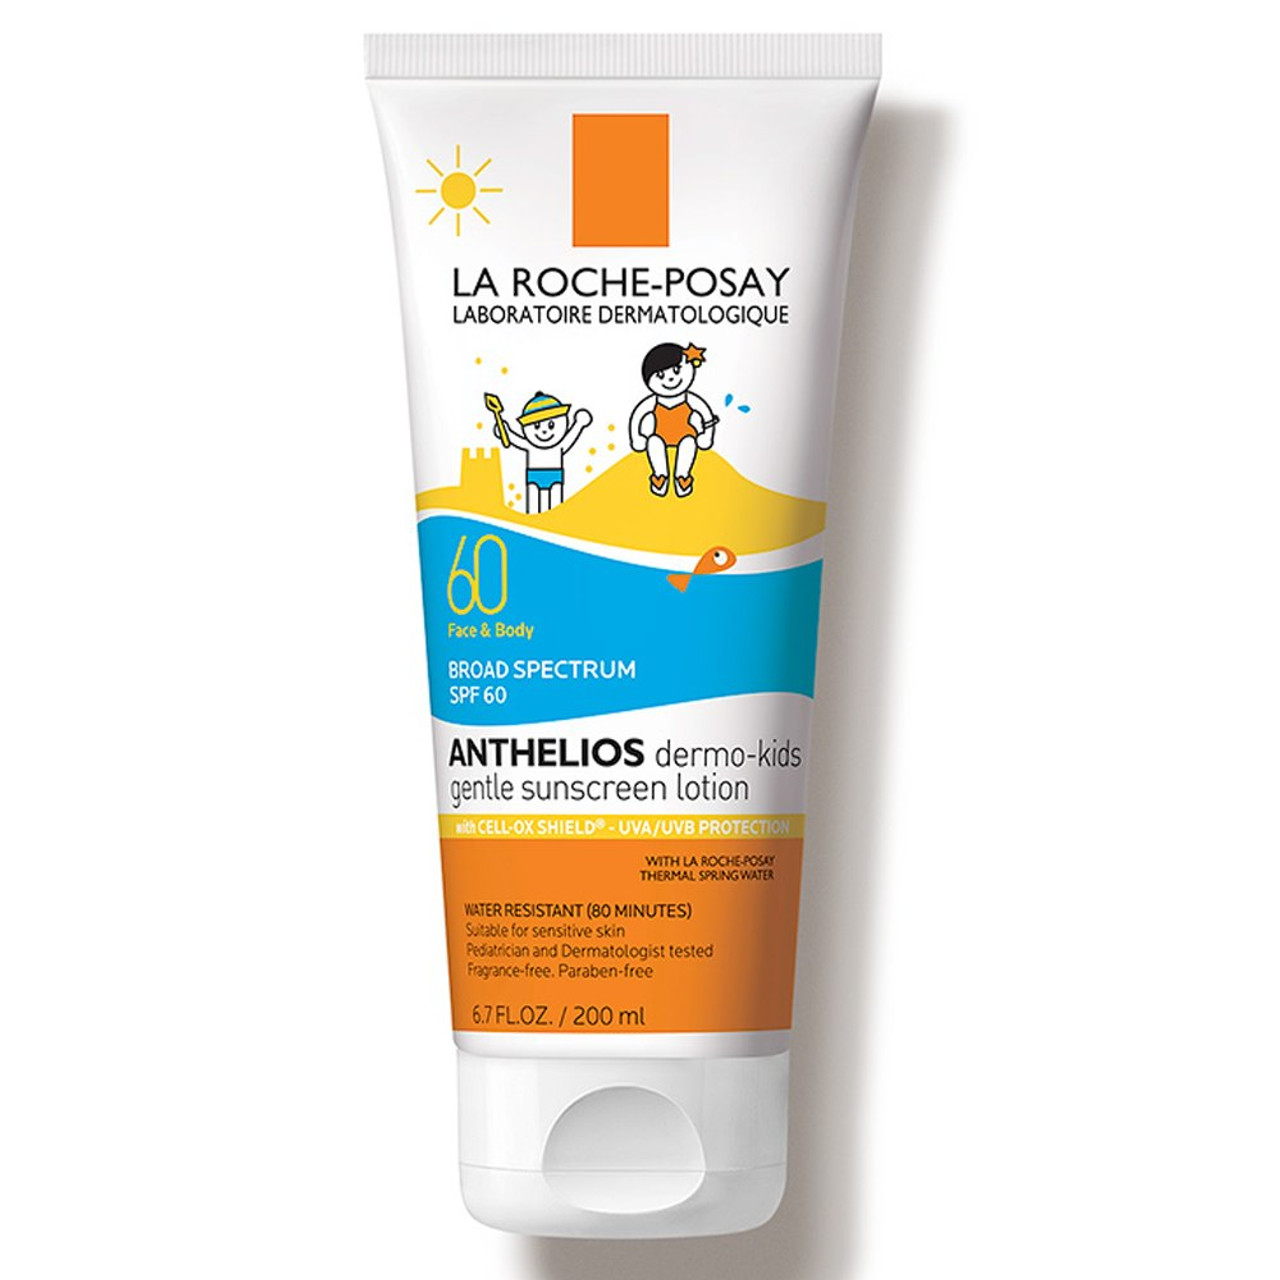 La Roche Posay Anthelios Dermo-Kids Gentle Lotion Sunscreen SPF 60